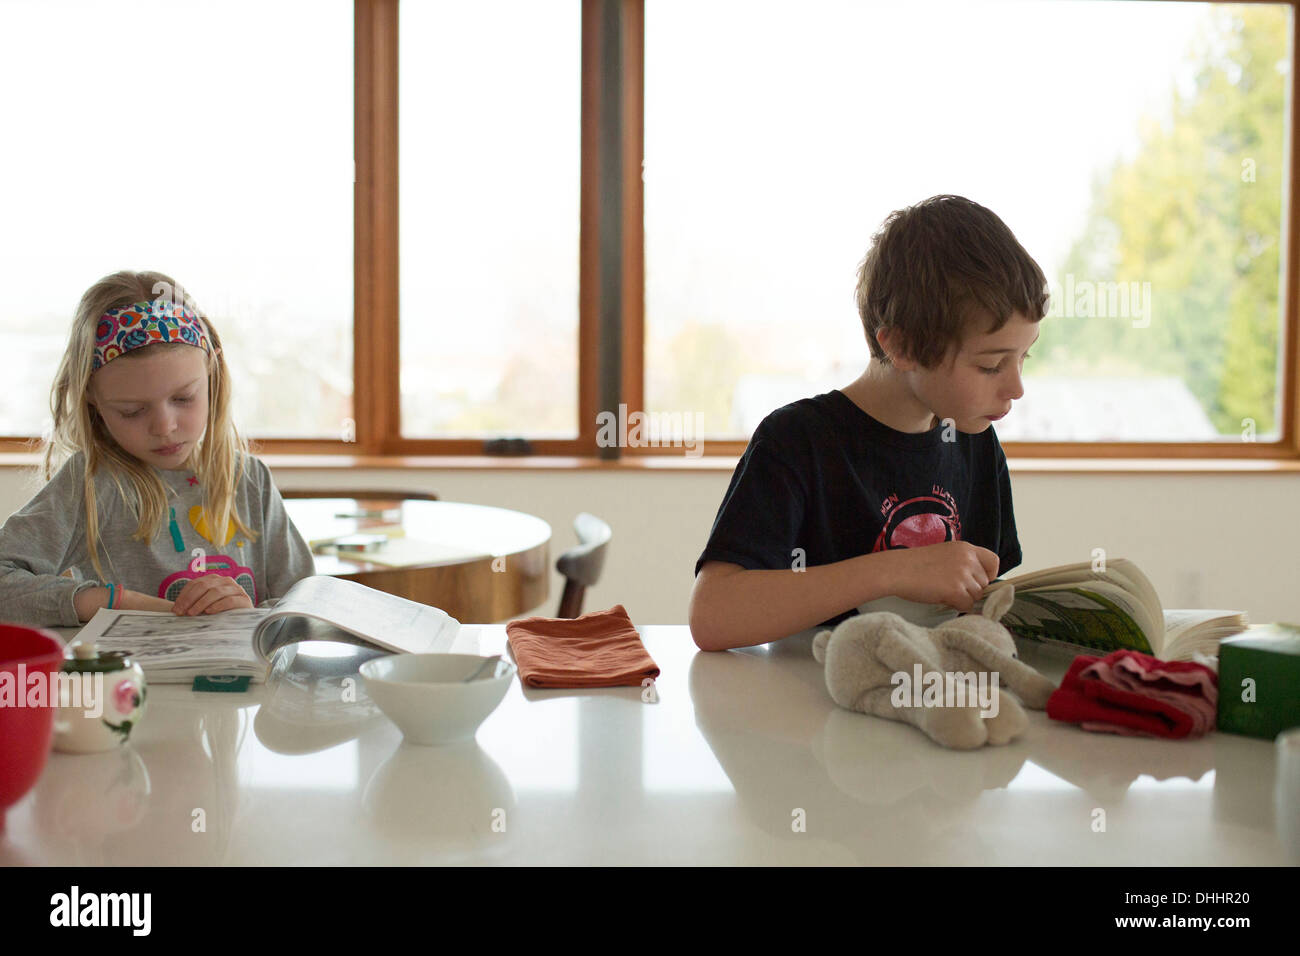 Boy and girl sitting at table reading - Stock Image